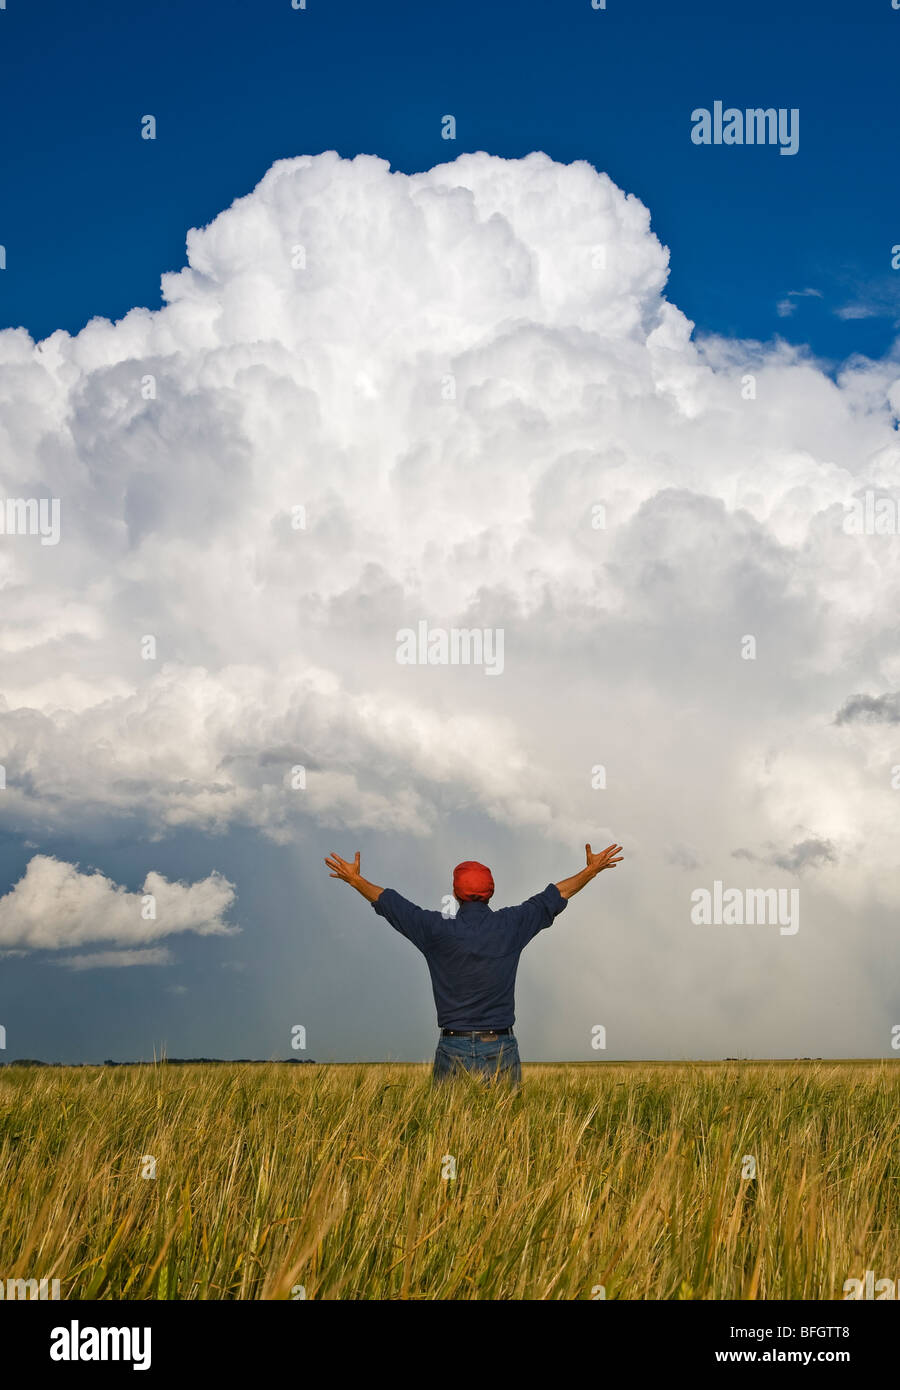 A man looks out over a barley field with a cumulonimbus supercell cloud, Bromhead, Saskatchewan, Canada Stock Photo